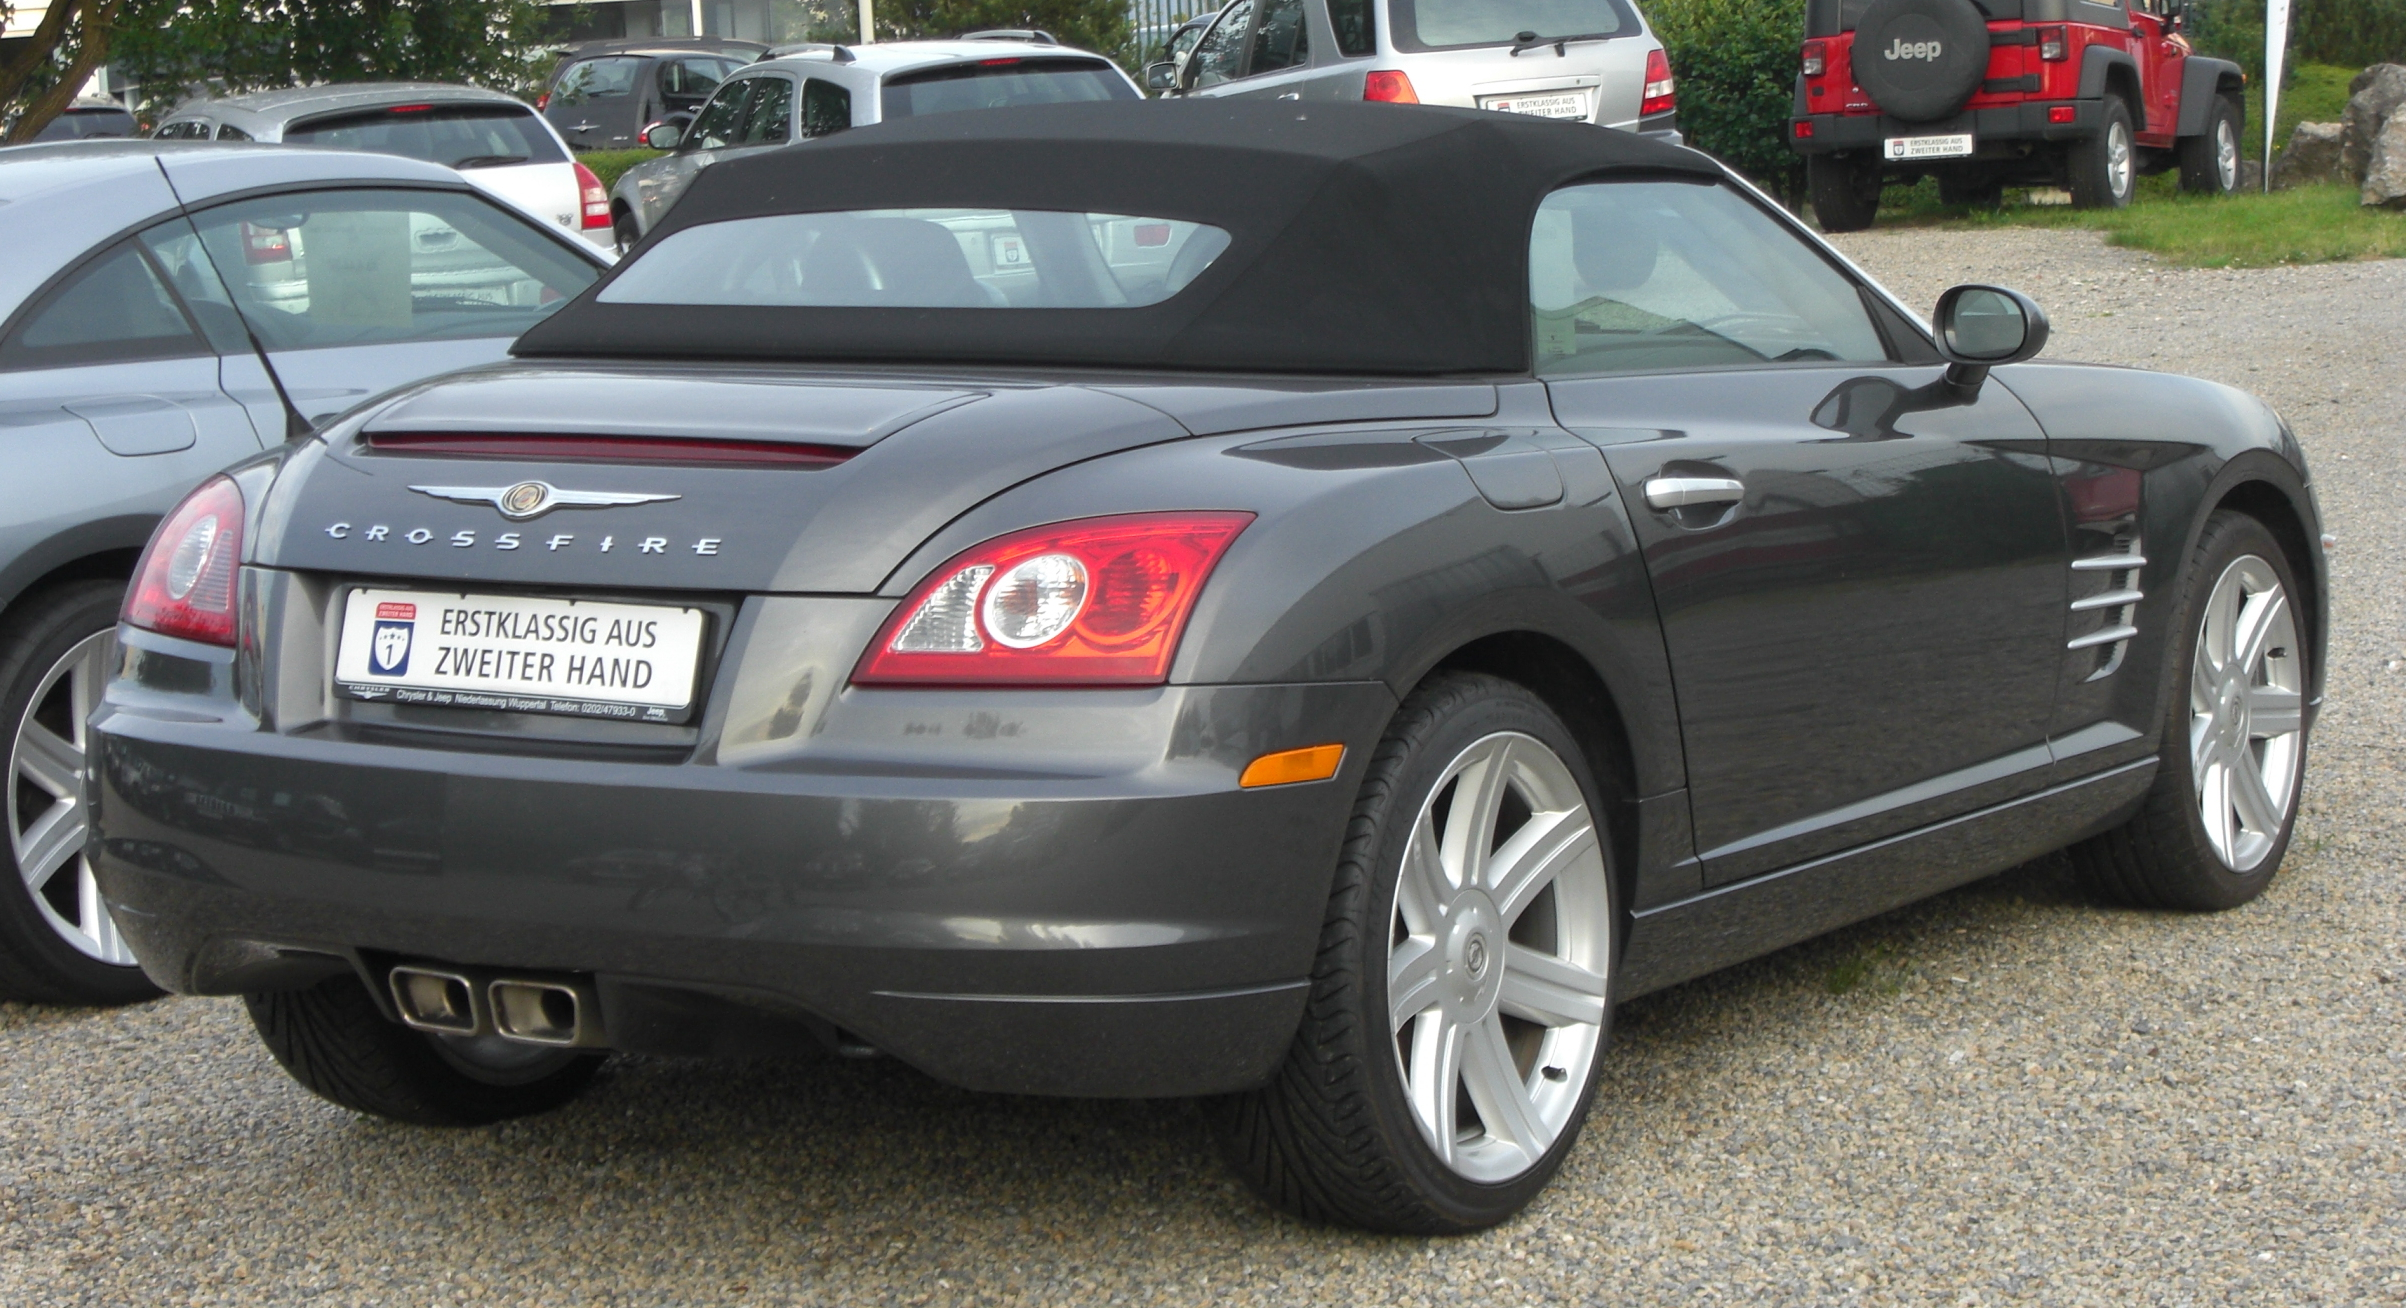 file chrysler crossfire roadster wikimedia commons. Black Bedroom Furniture Sets. Home Design Ideas